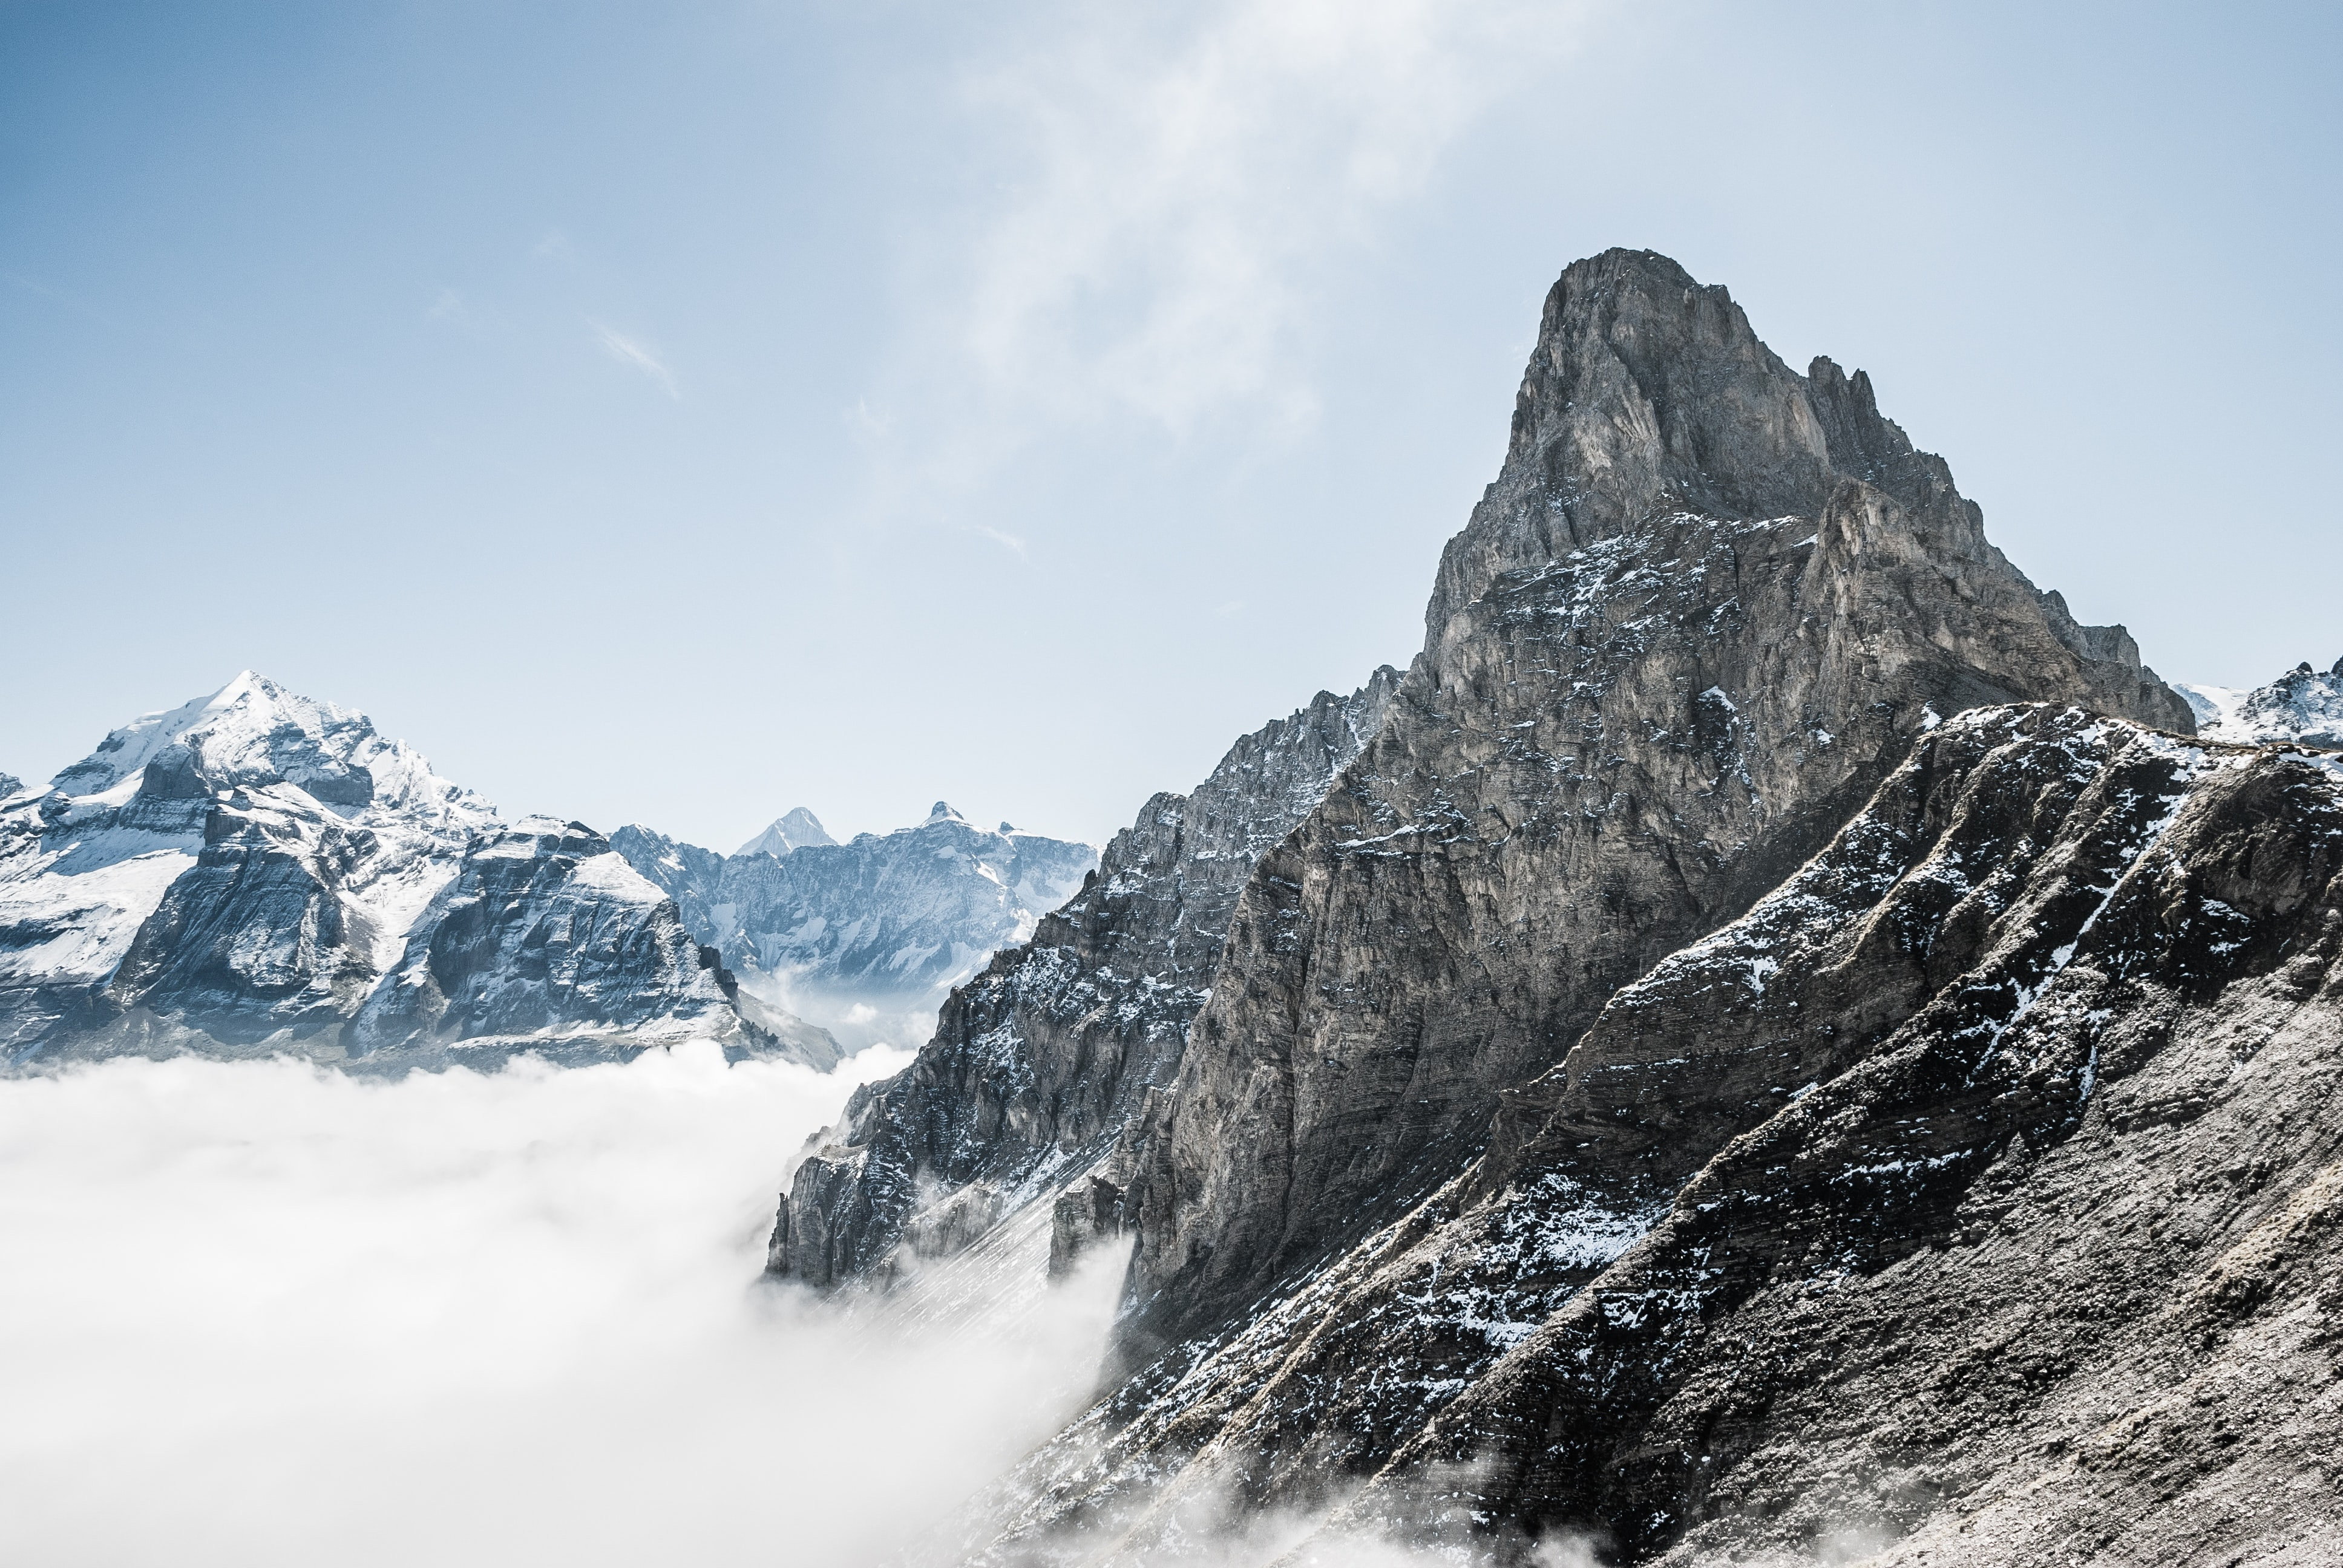 The snow covered Bunderspitz mountain peak rising above the clouds